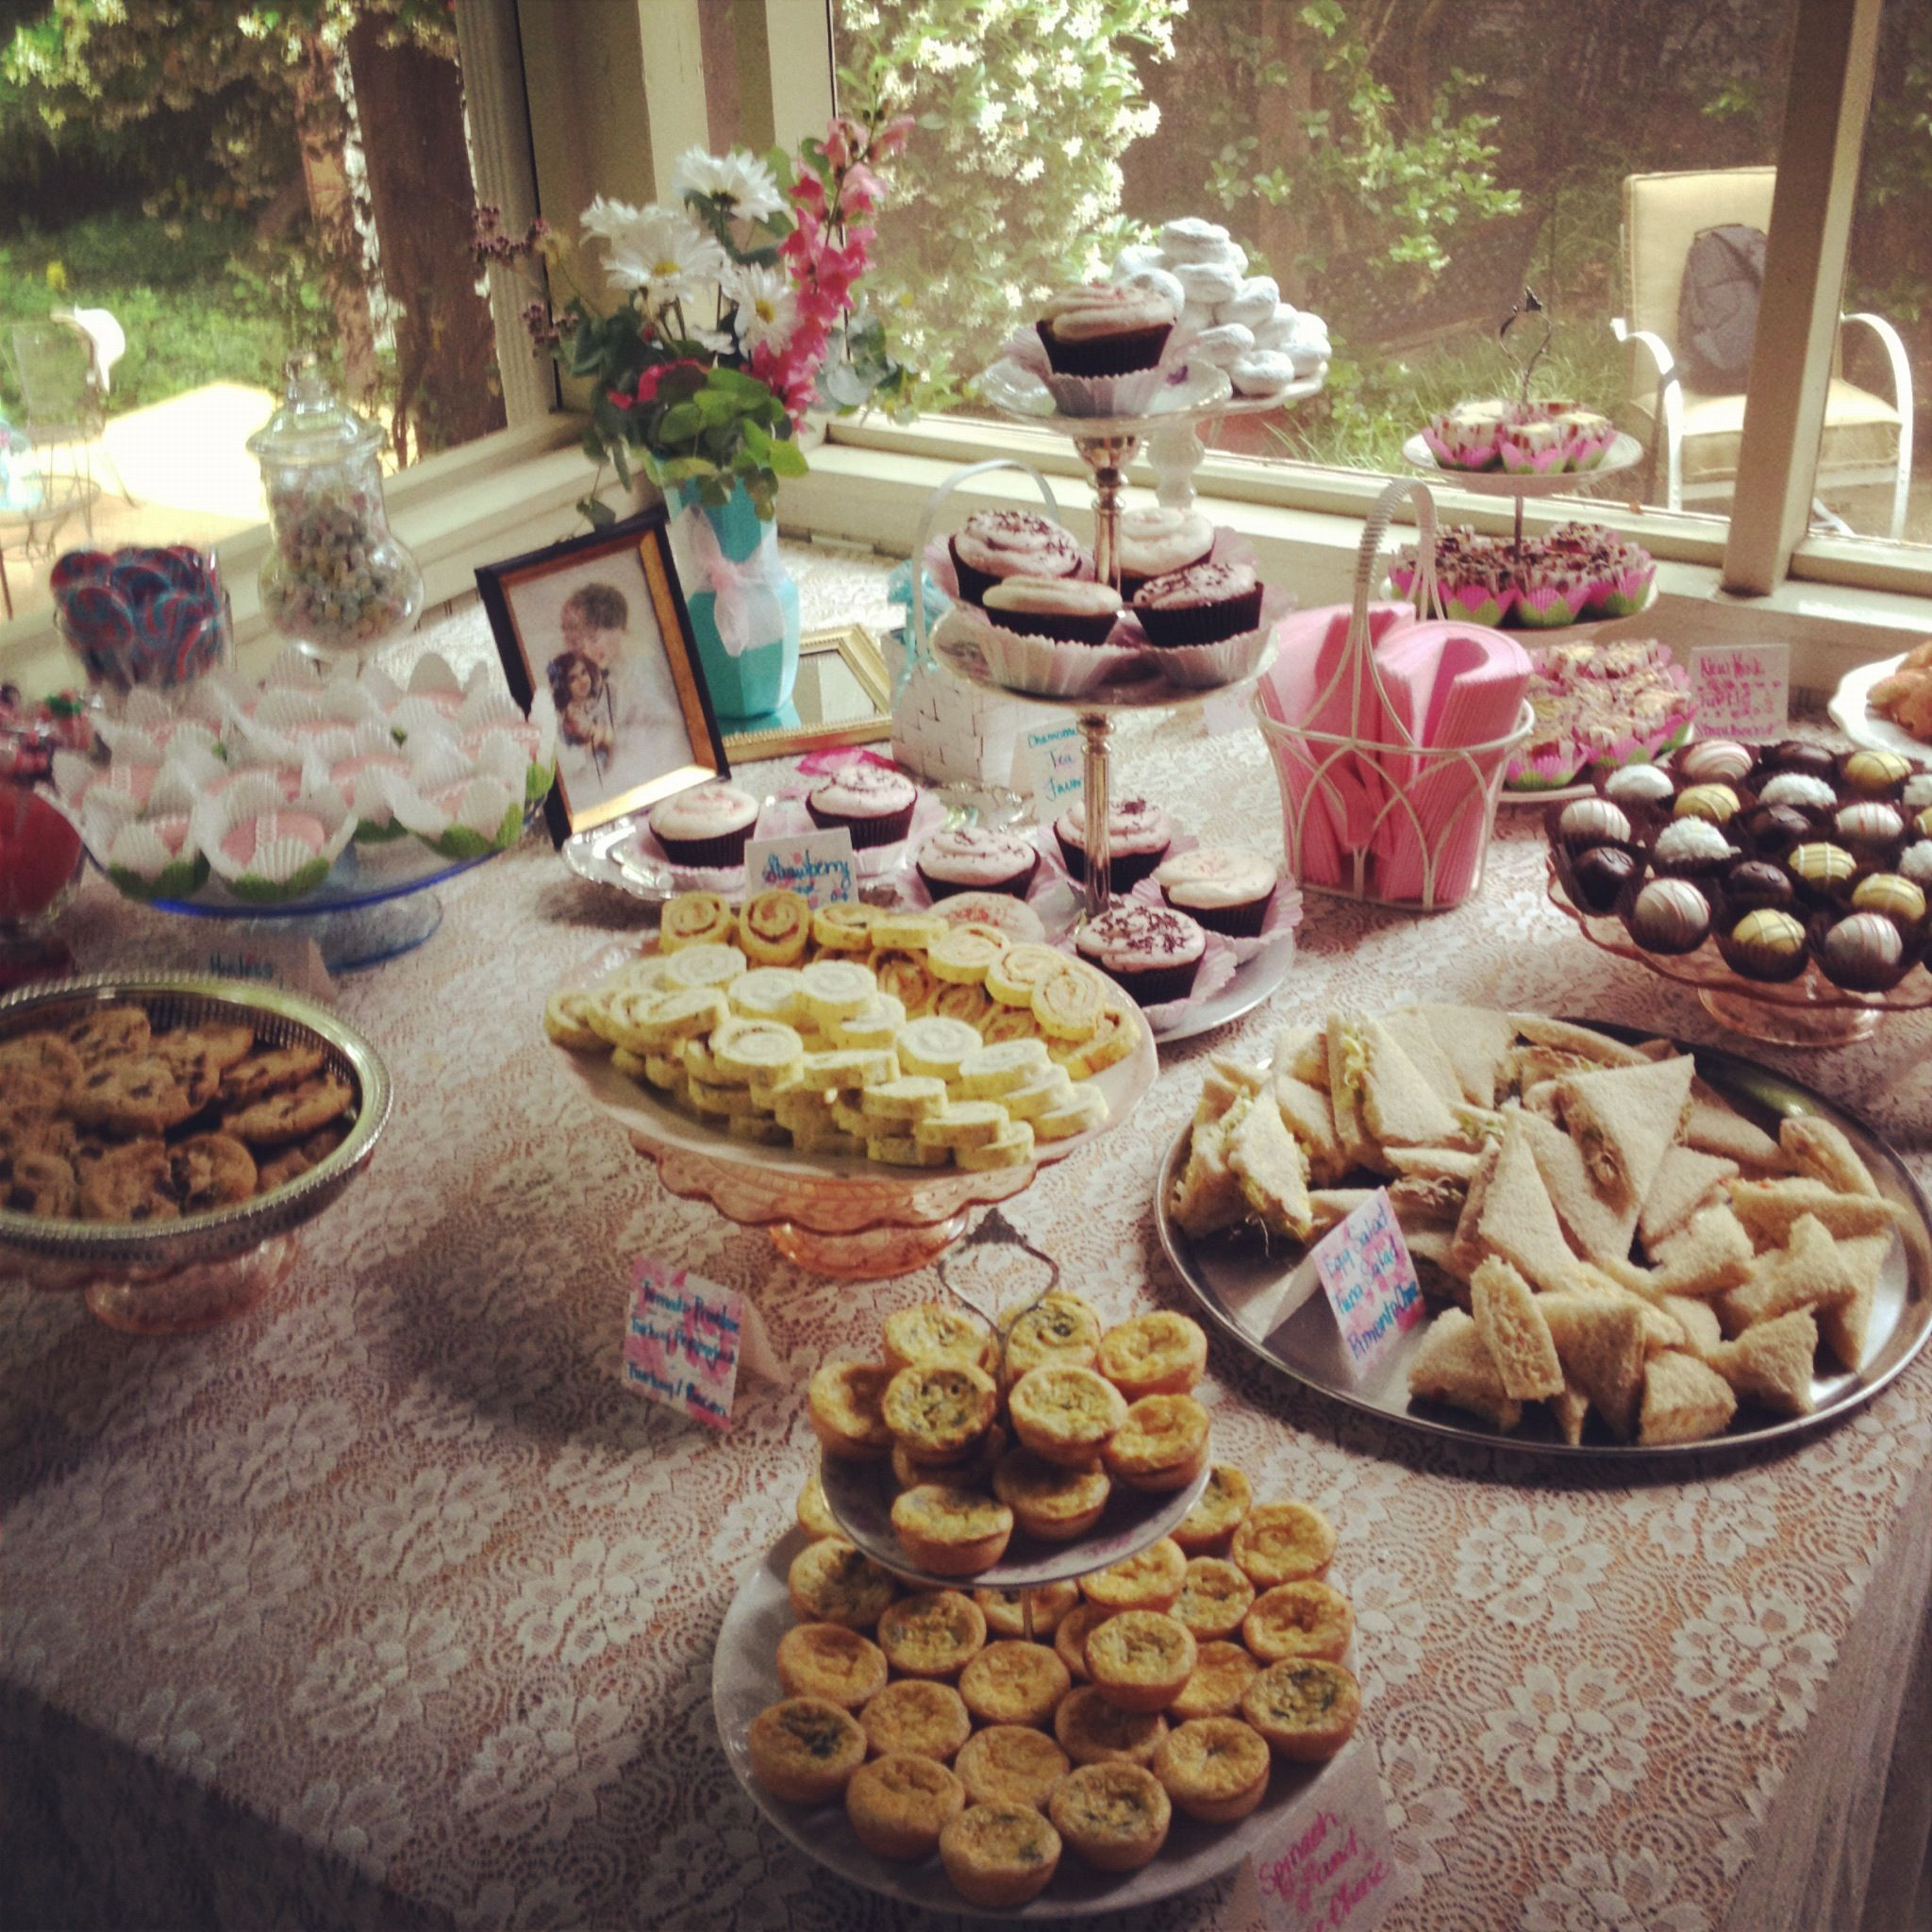 English Tea Party Ideas: Mini Quiches, Roll Up Sandwiches, Petite Just A Thought On